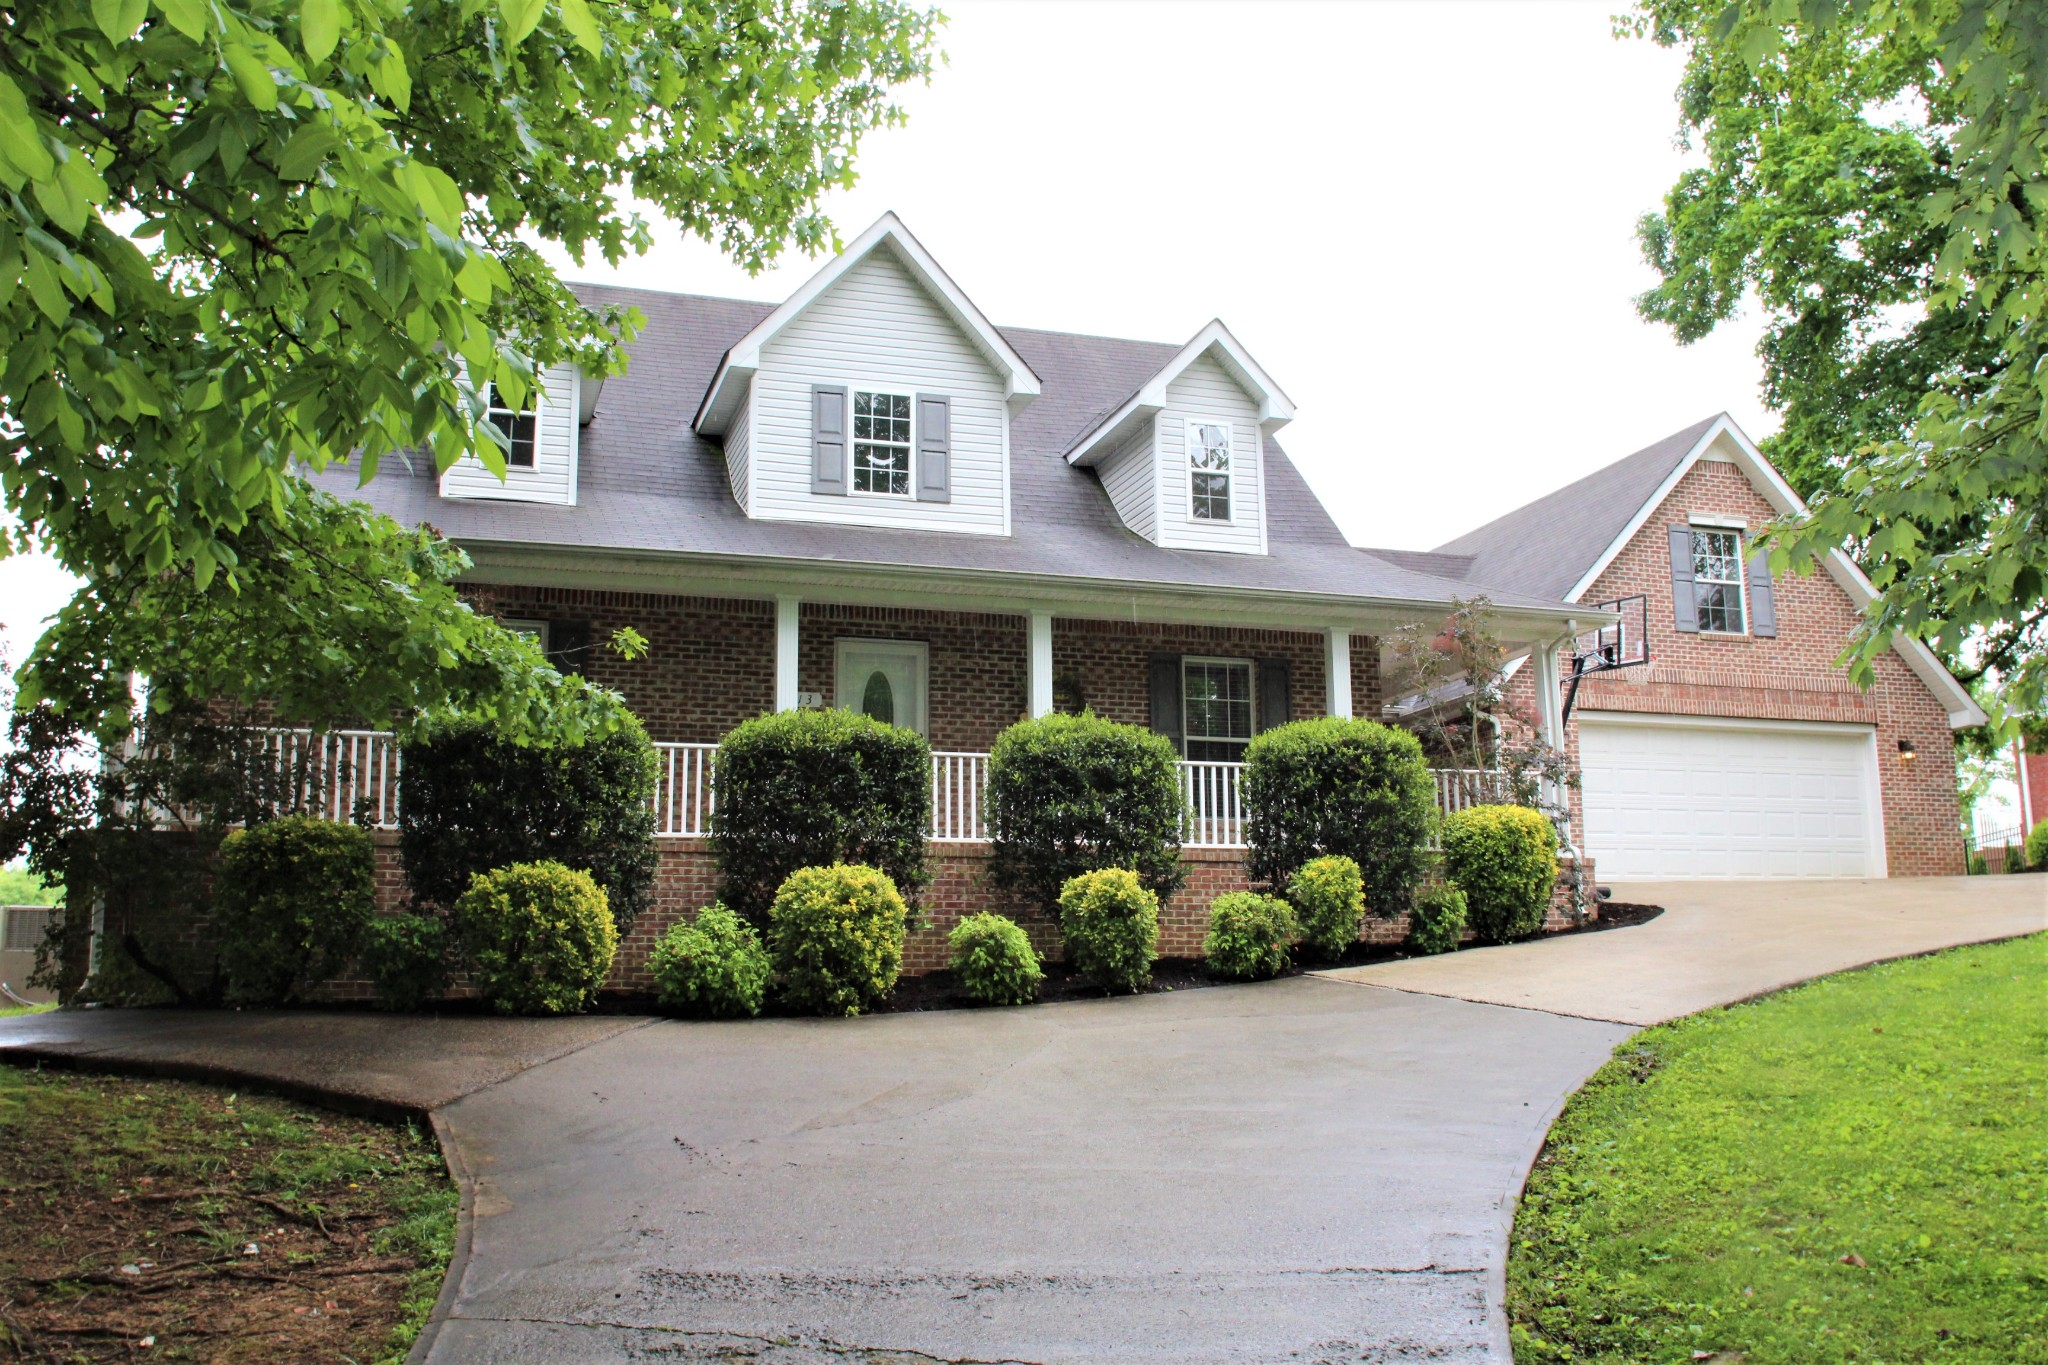 913 Franklin Ct Property Photo - Cookeville, TN real estate listing